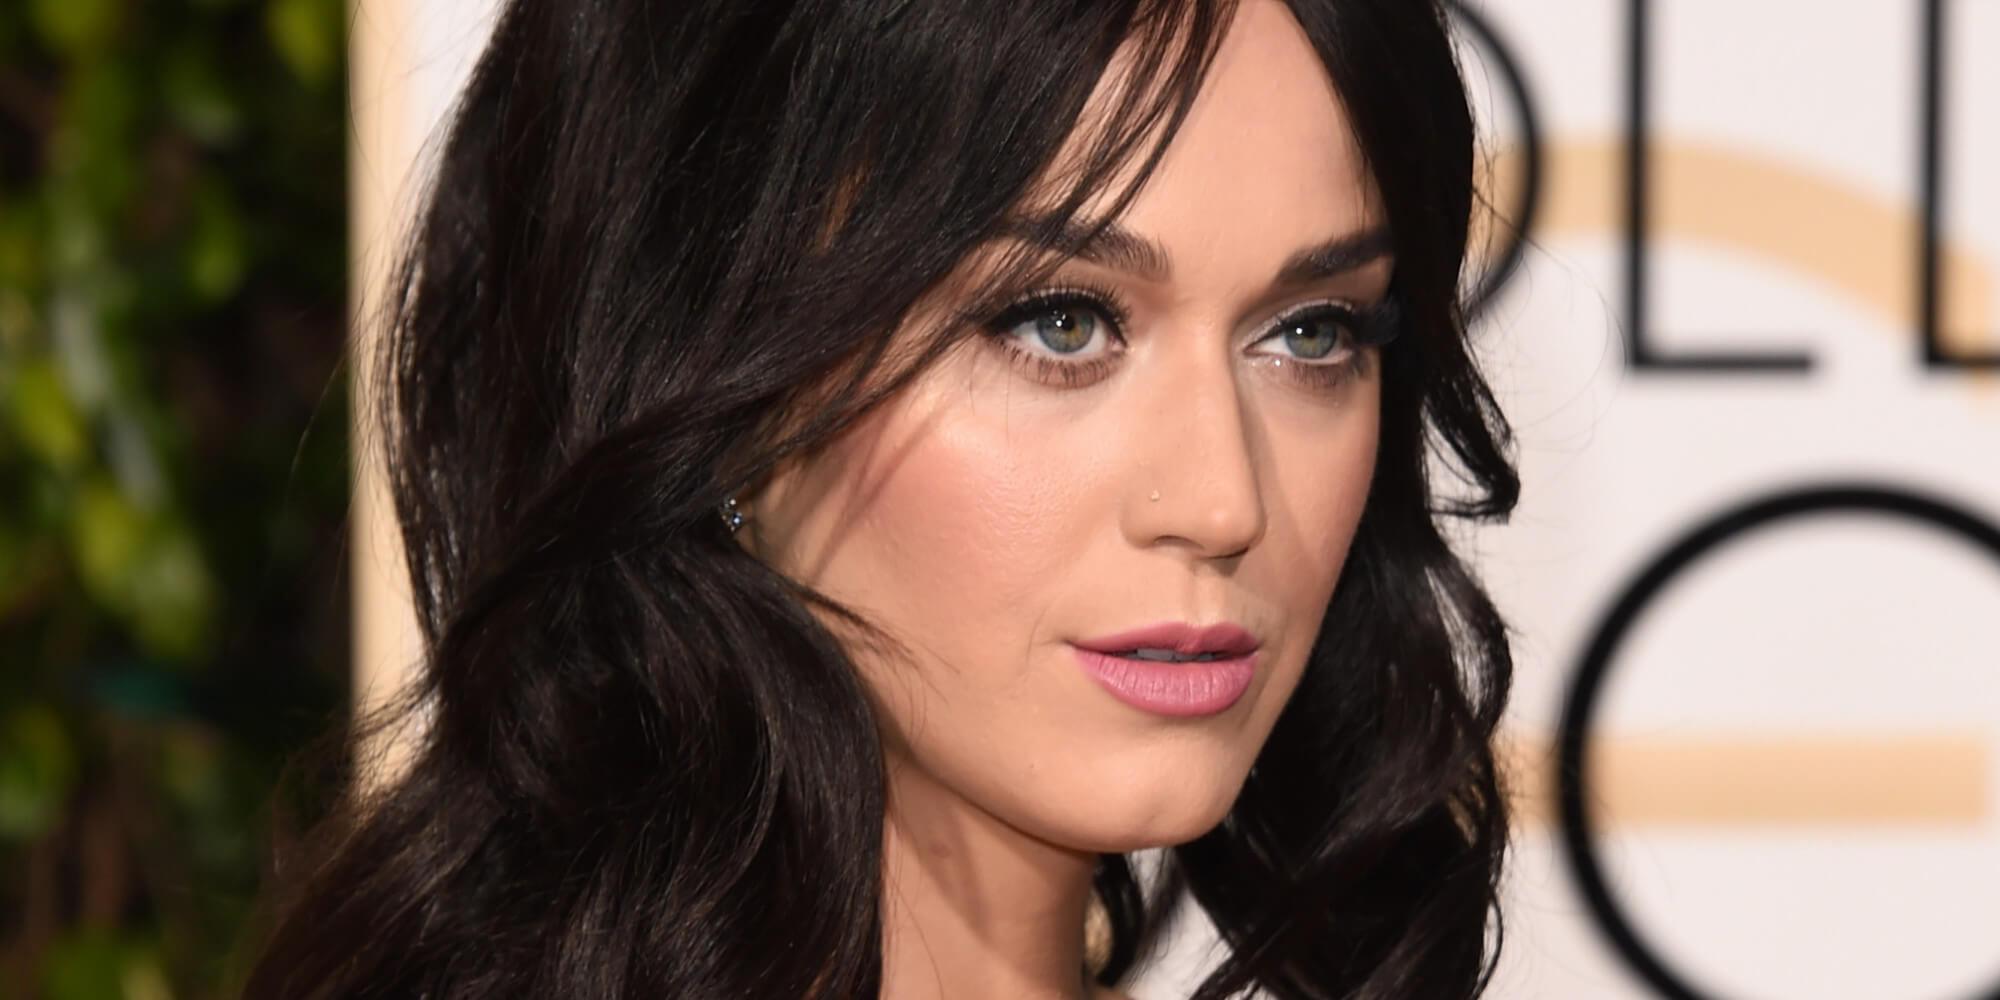 celebrities-good-deeds-katy-perry-donated-10k-to-planned-parenthood-2